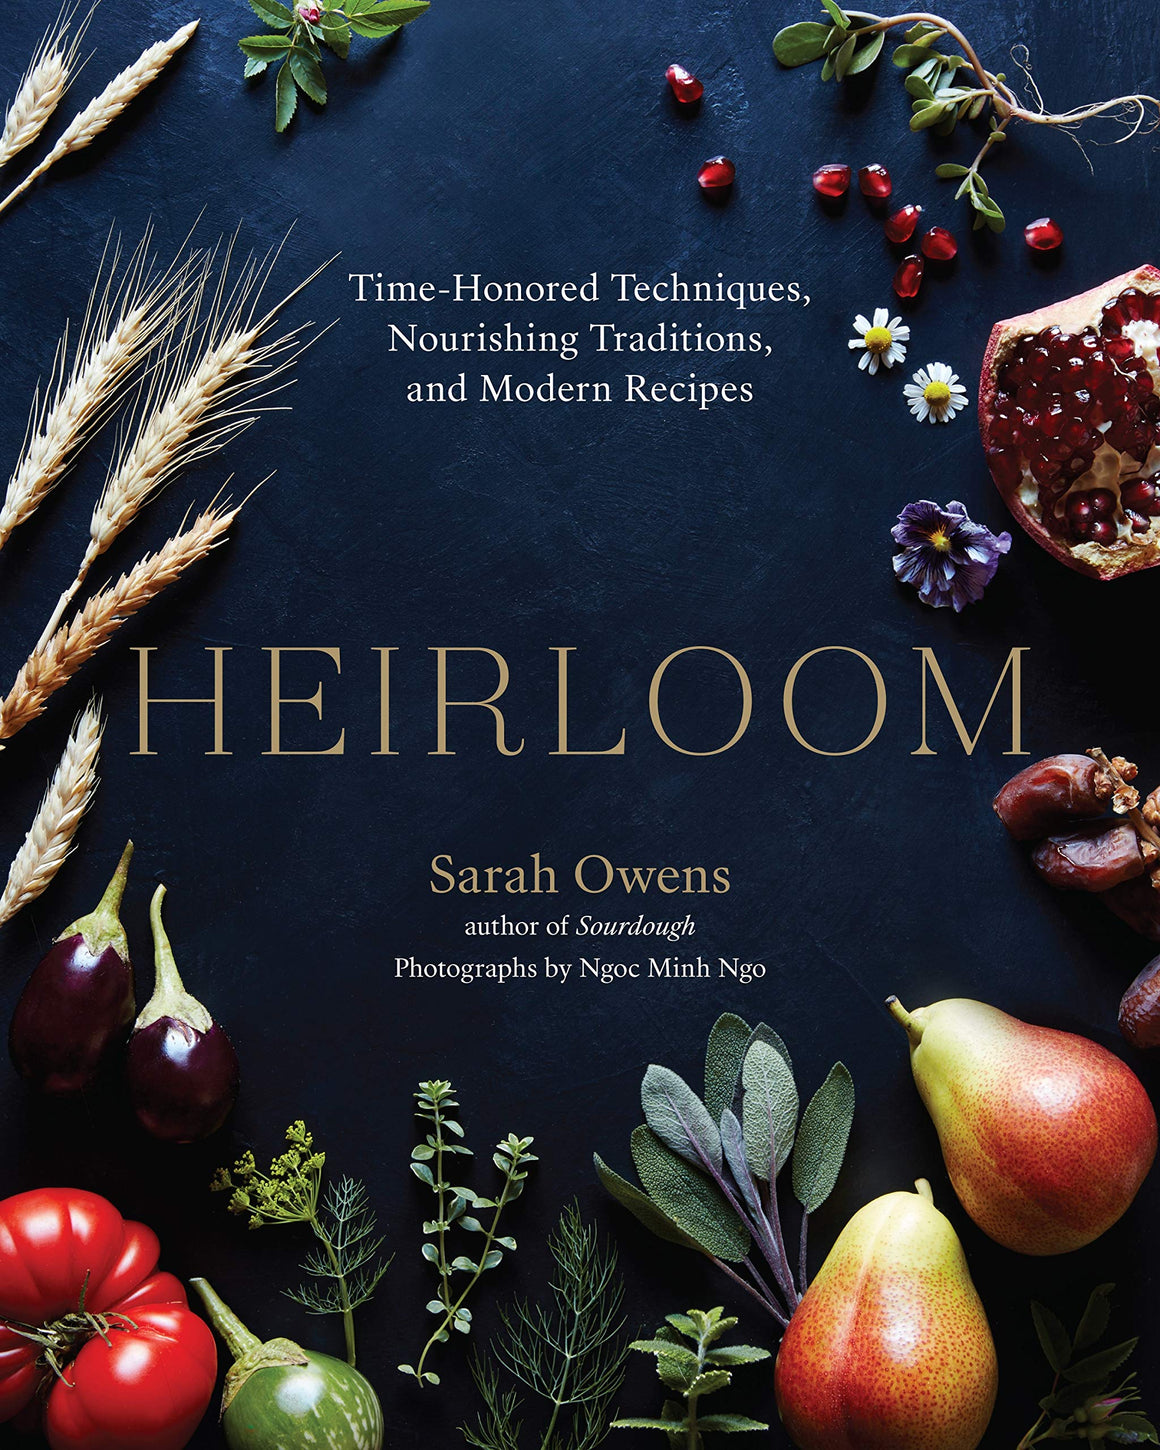 SIGNED! Sarah Owens. Heirloom: Time-Honored Techniques, Nourishing Traditions, and Modern Recipes